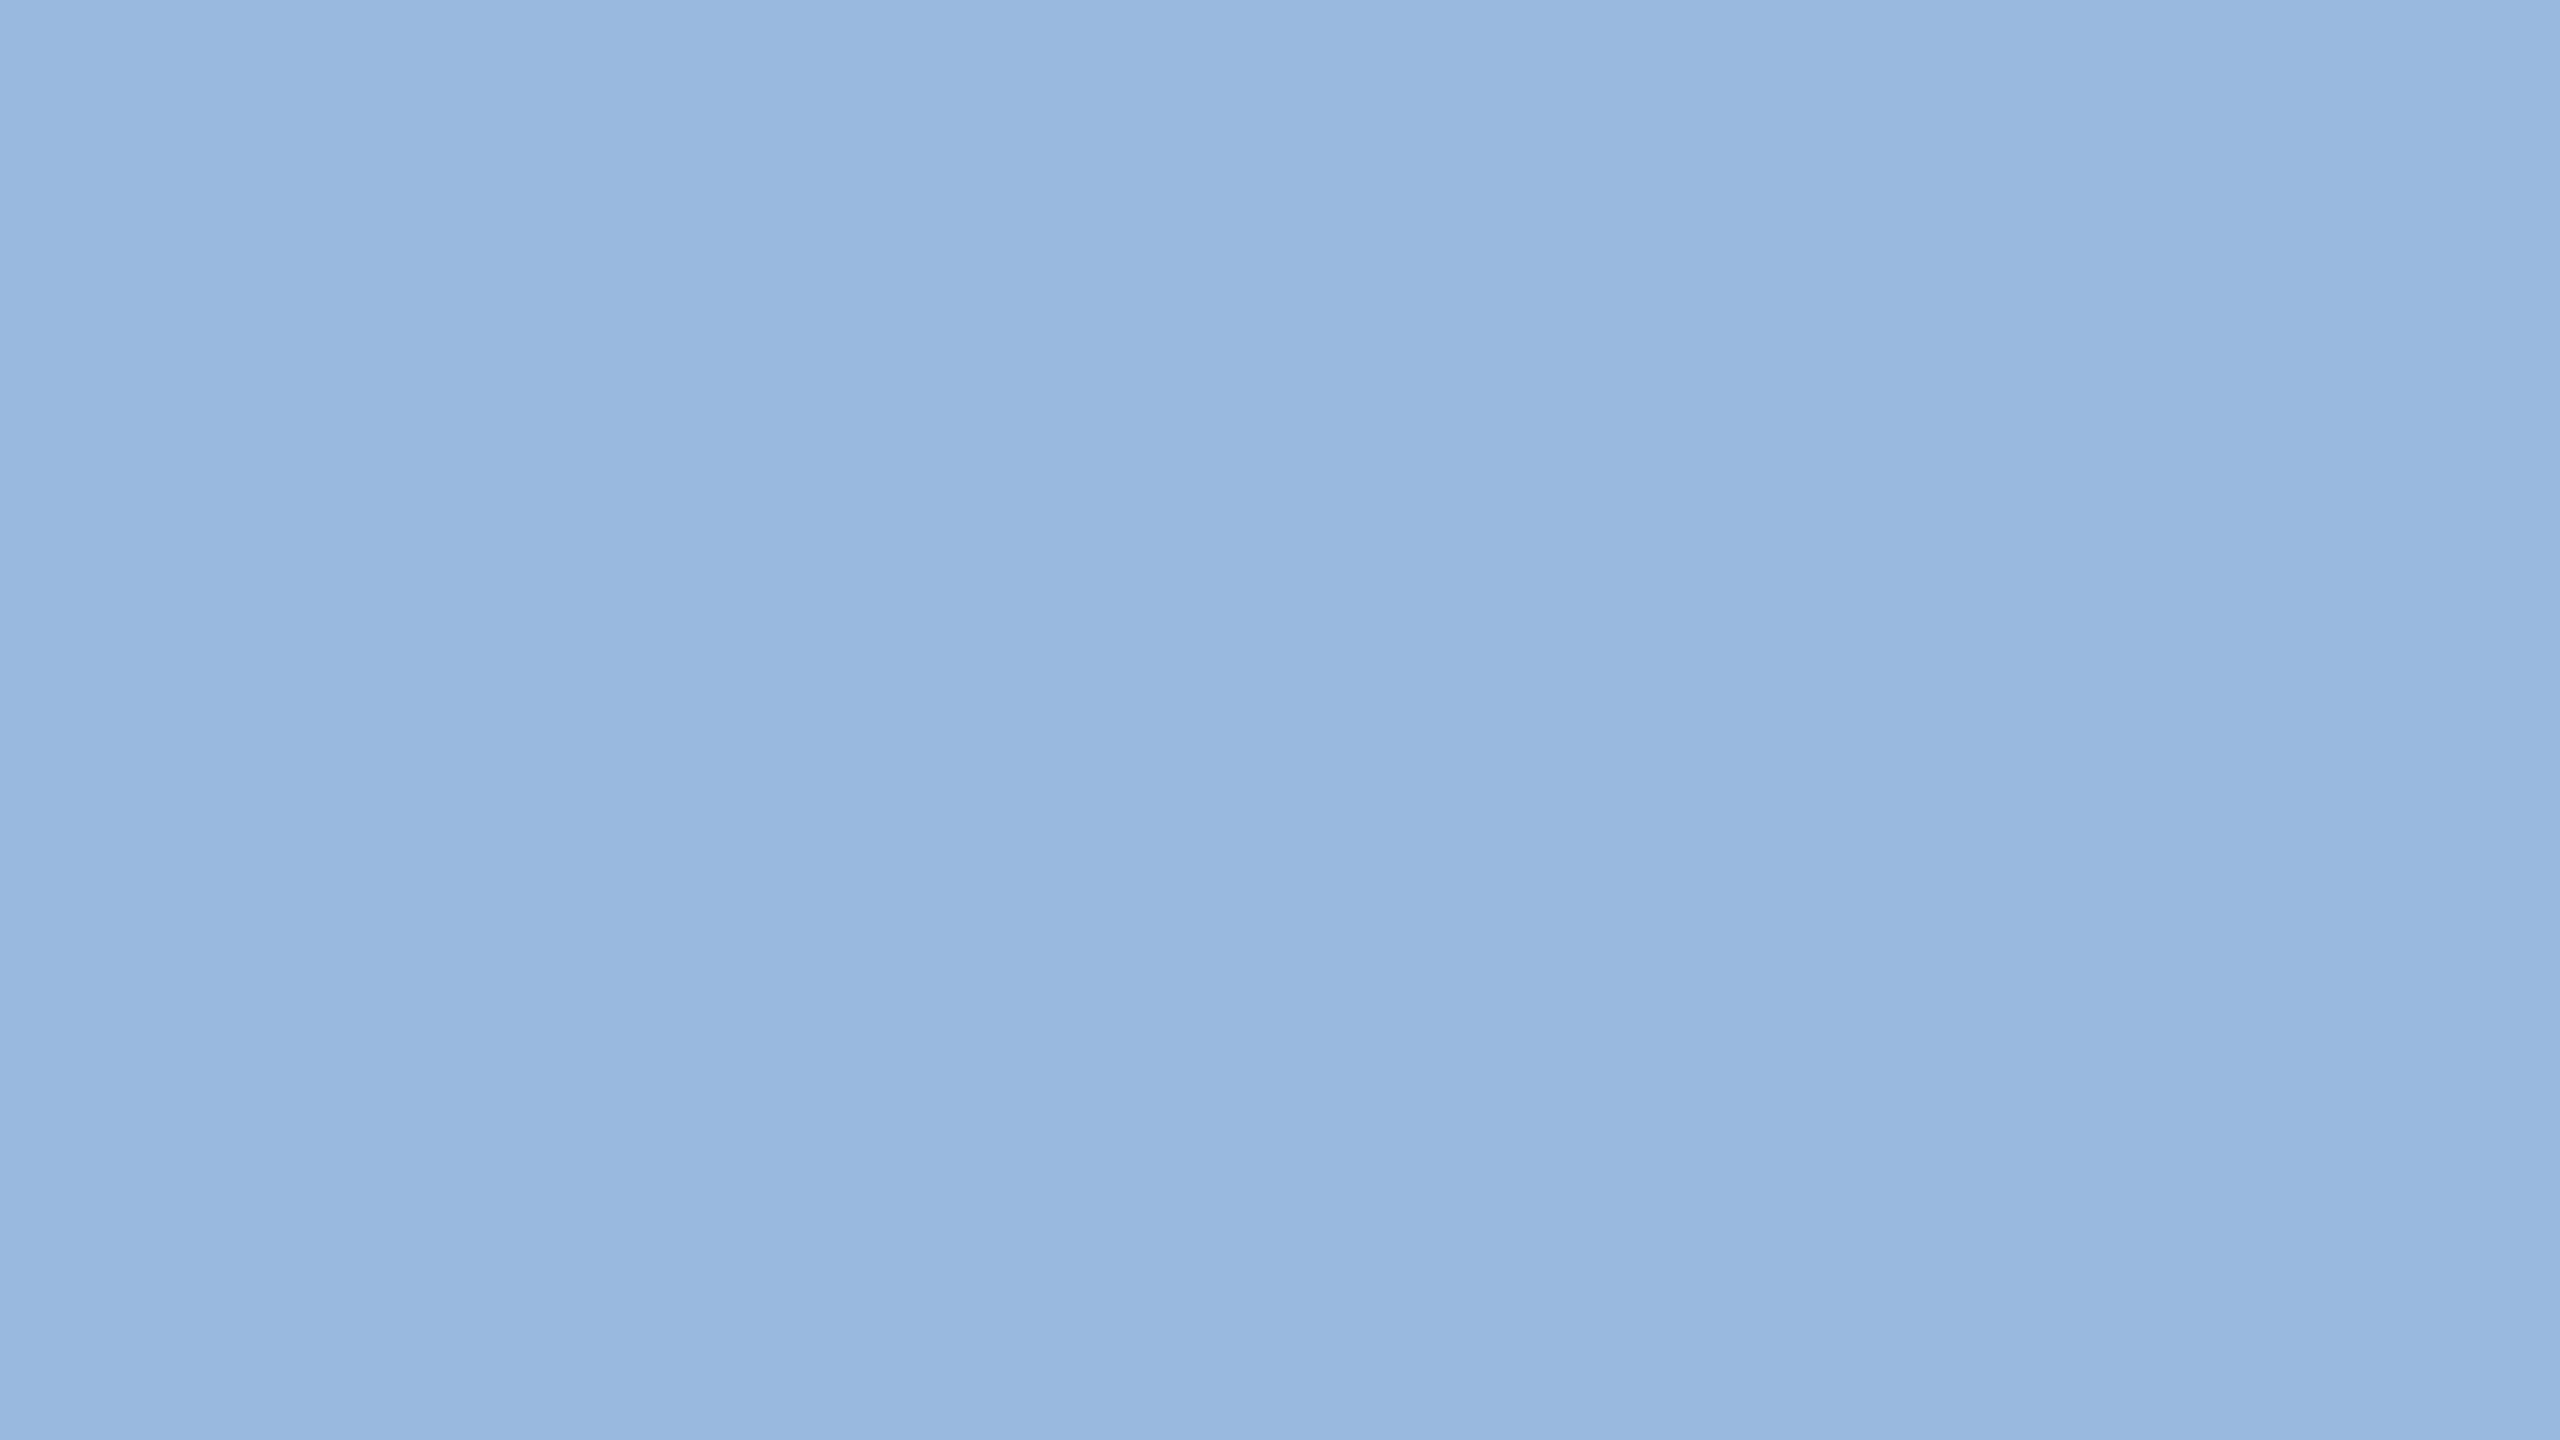 2560x1440 Carolina Blue Solid Color Background